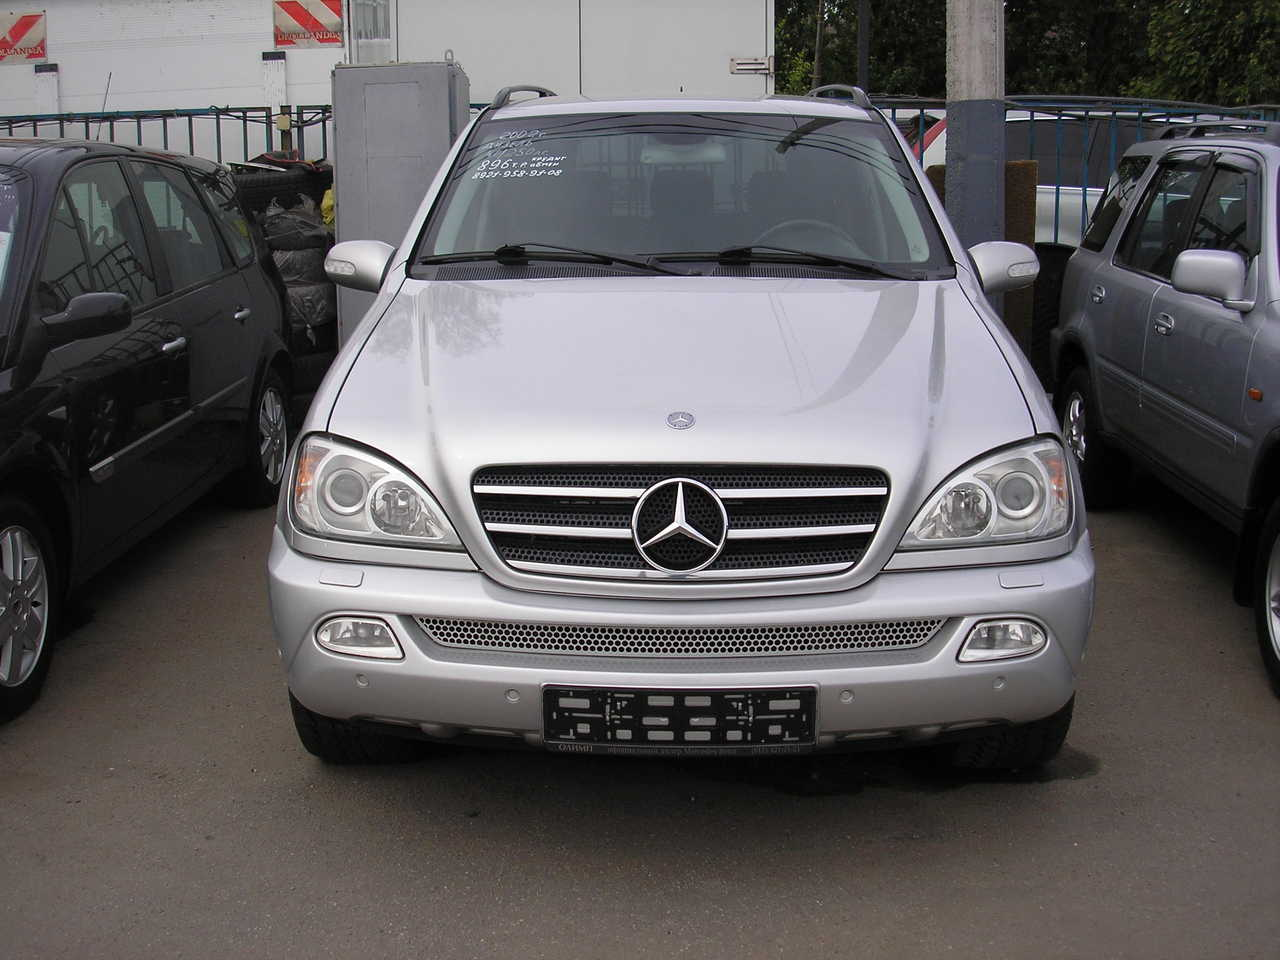 2002 mercedes benz ml class for sale 4 0 diesel automatic for sale. Black Bedroom Furniture Sets. Home Design Ideas